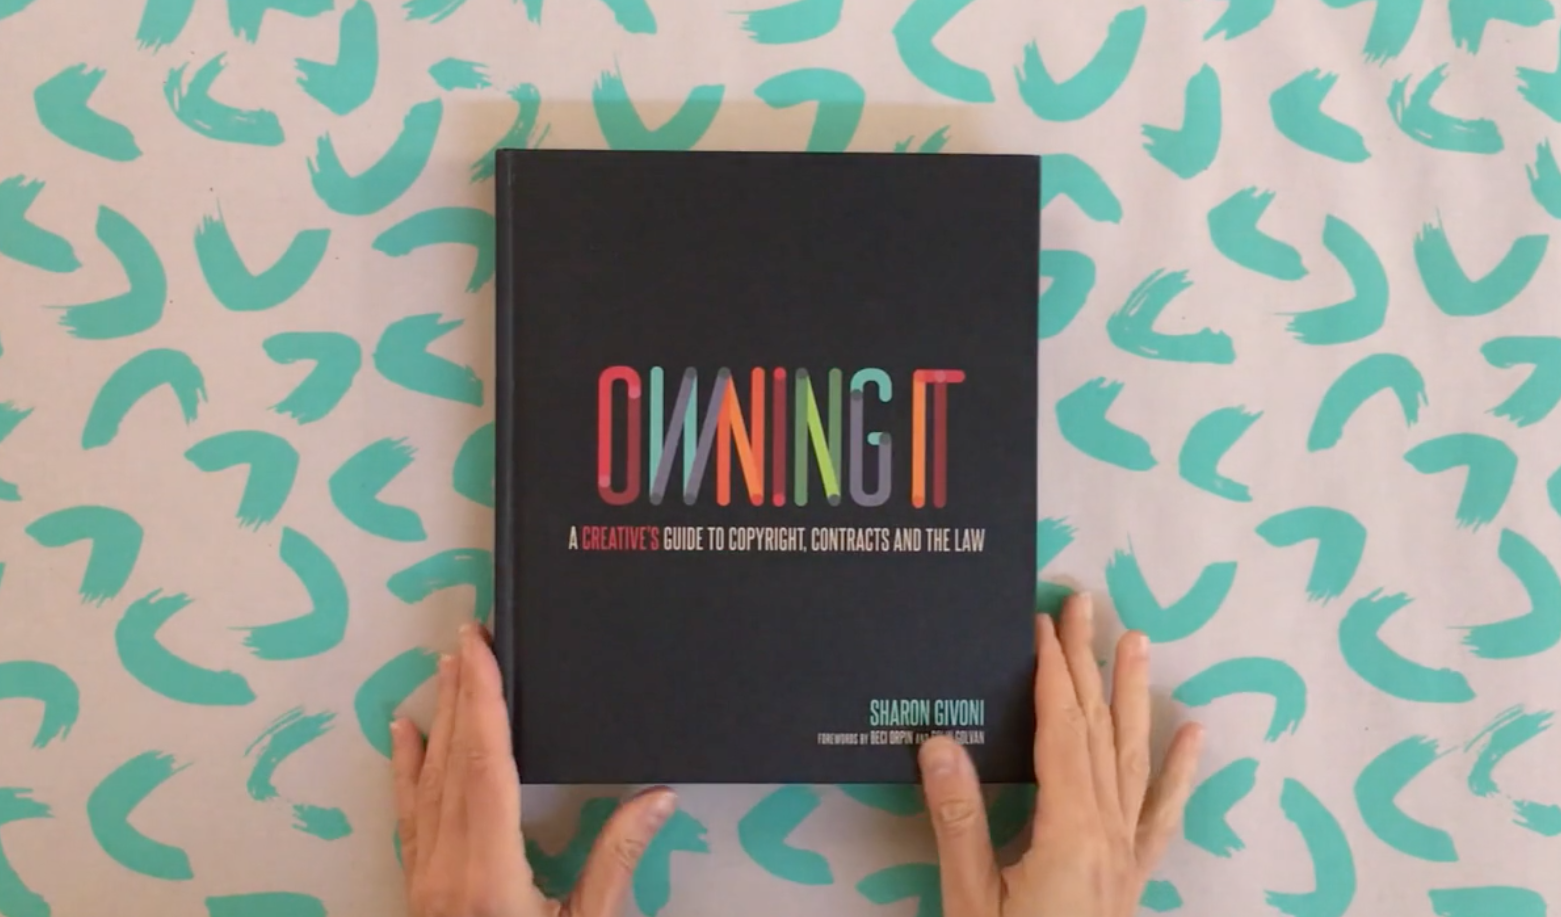 Owning It: A Creative's Guide to Copyright, Contracts and The Law    Creative Minds